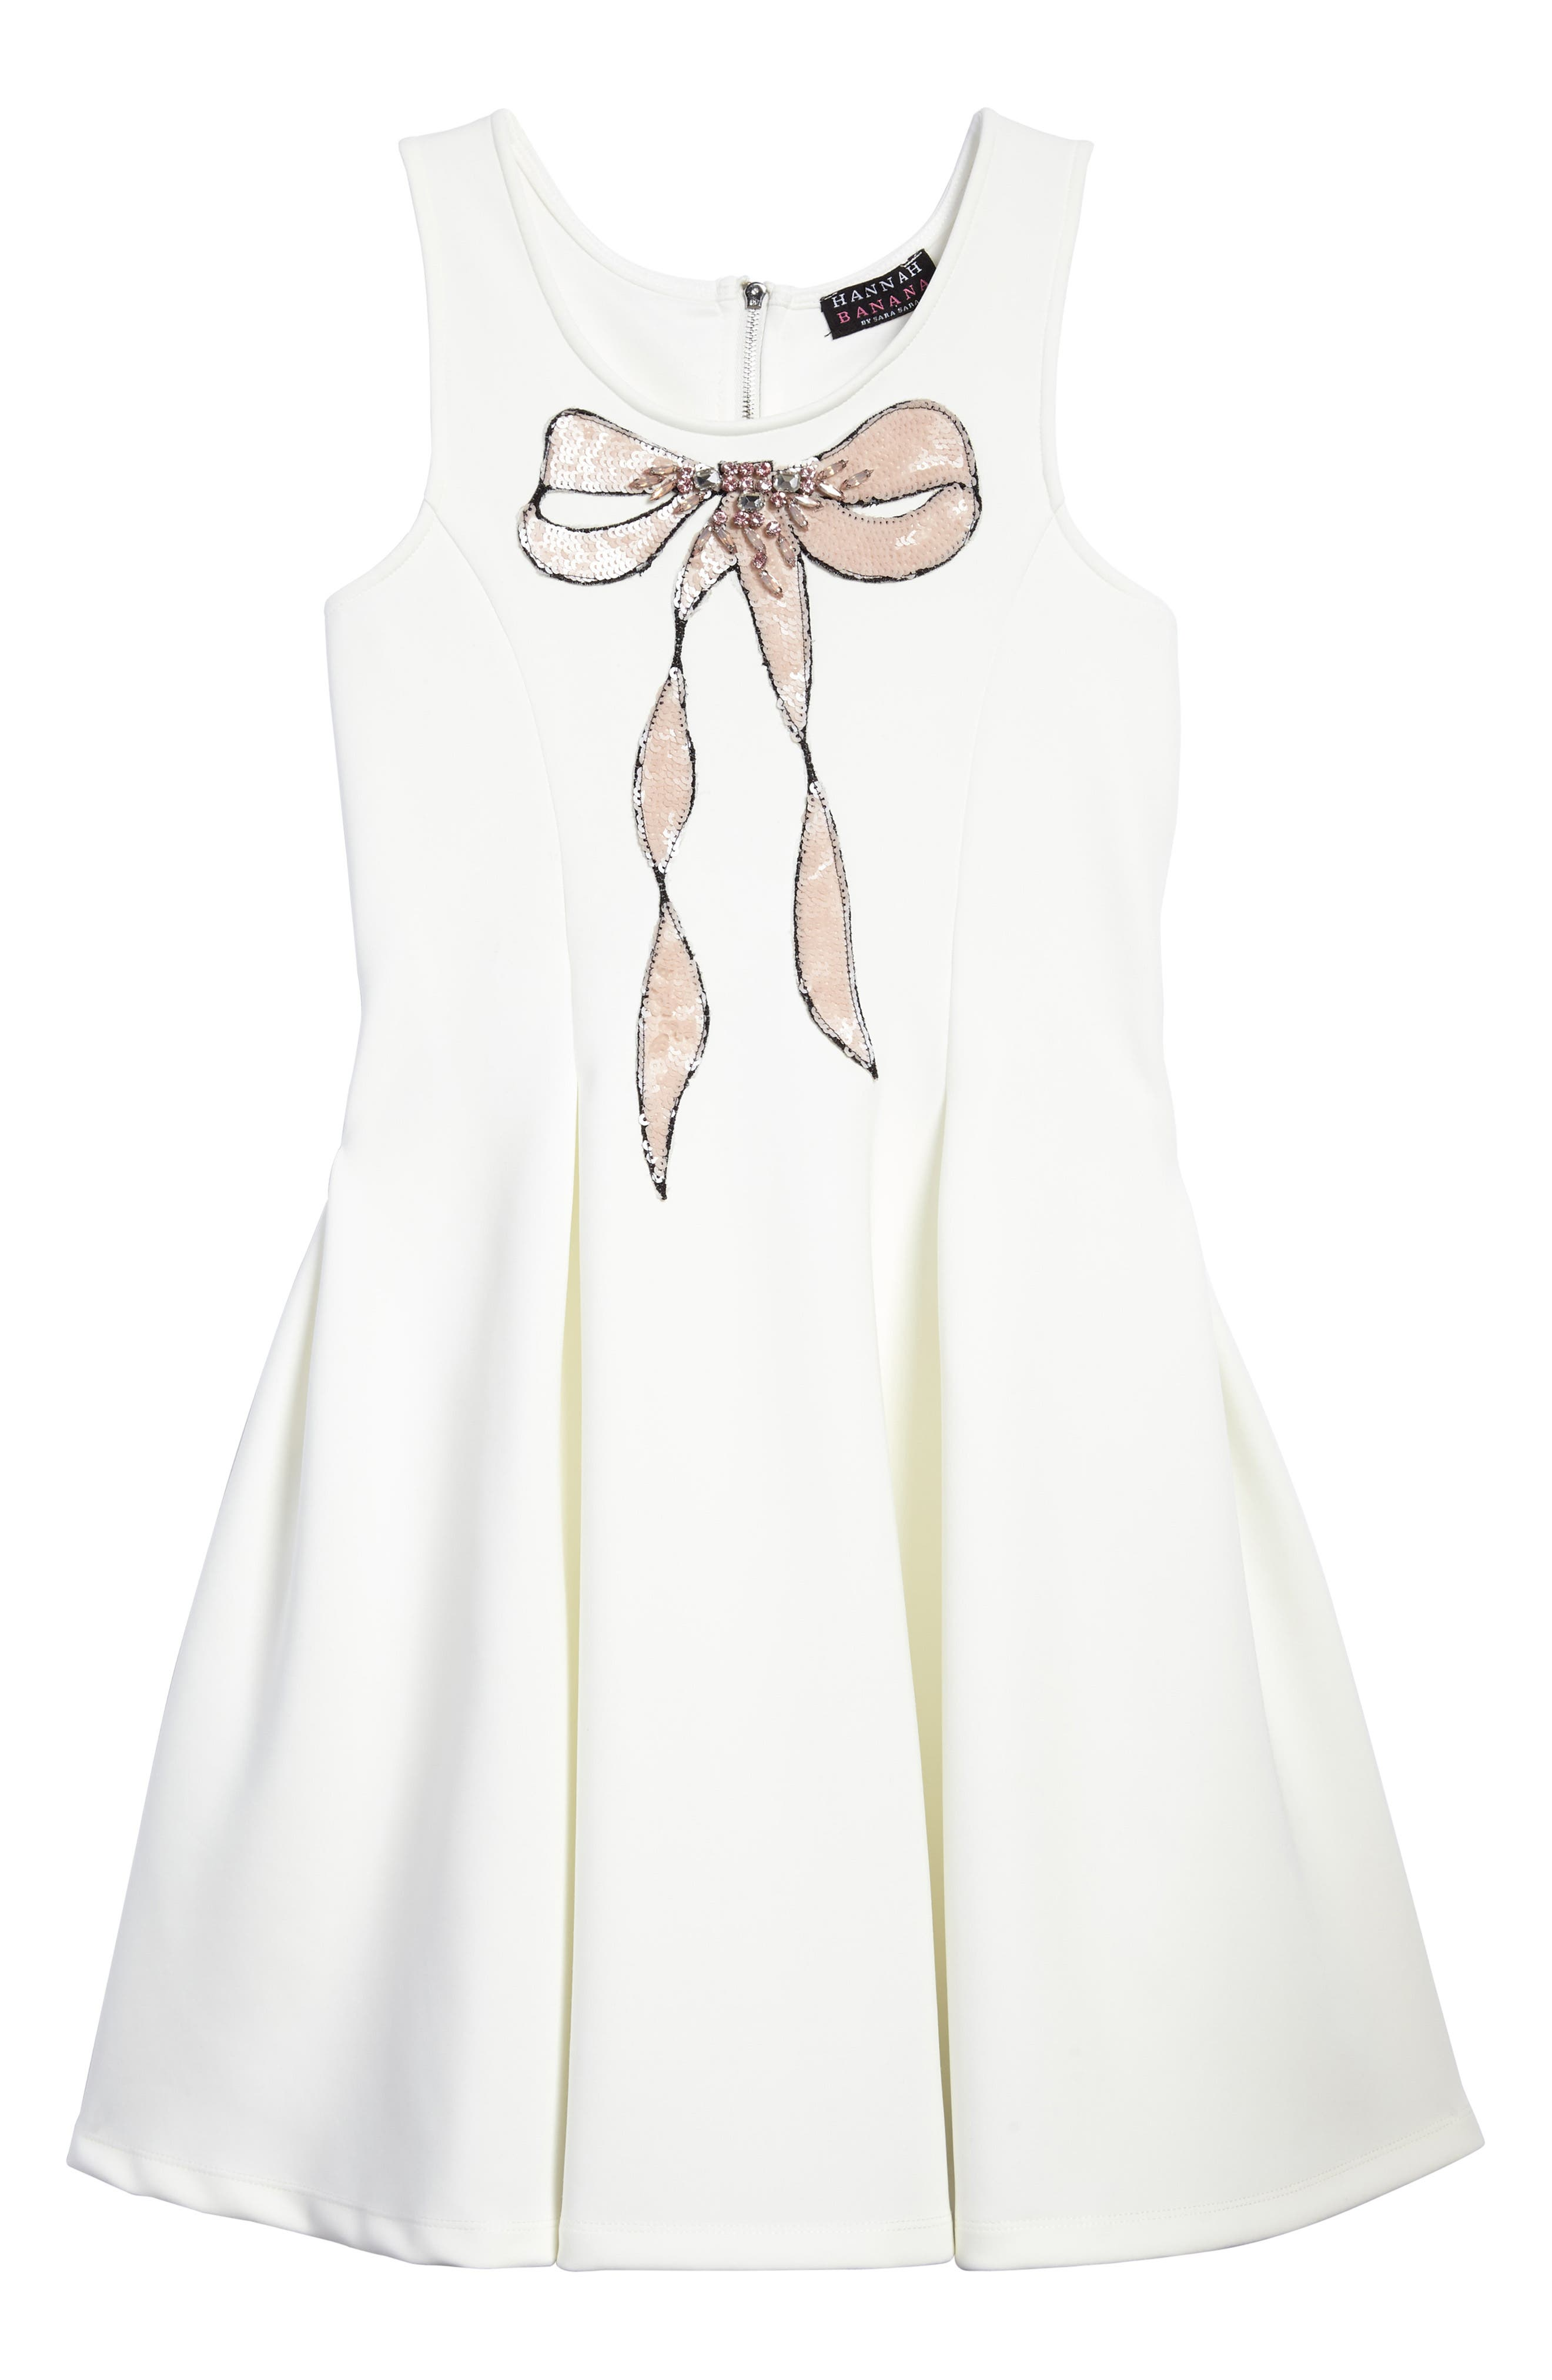 Sequin Embellished Bow A-Line Dress,                             Main thumbnail 1, color,                             250